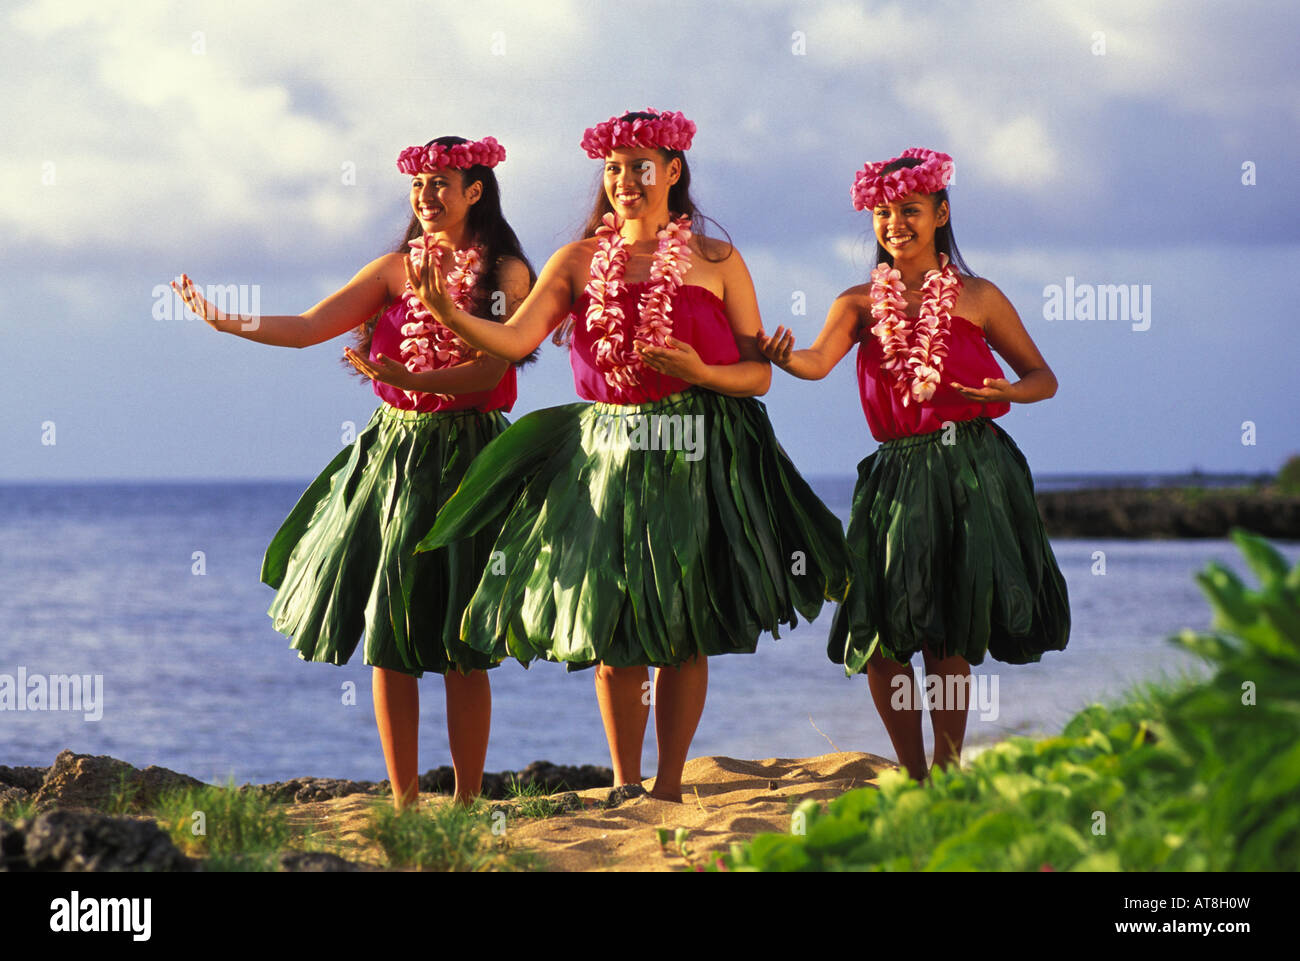 Three hula dancers with plumeria leis and ti leaf skirts near ocean - Stock Image